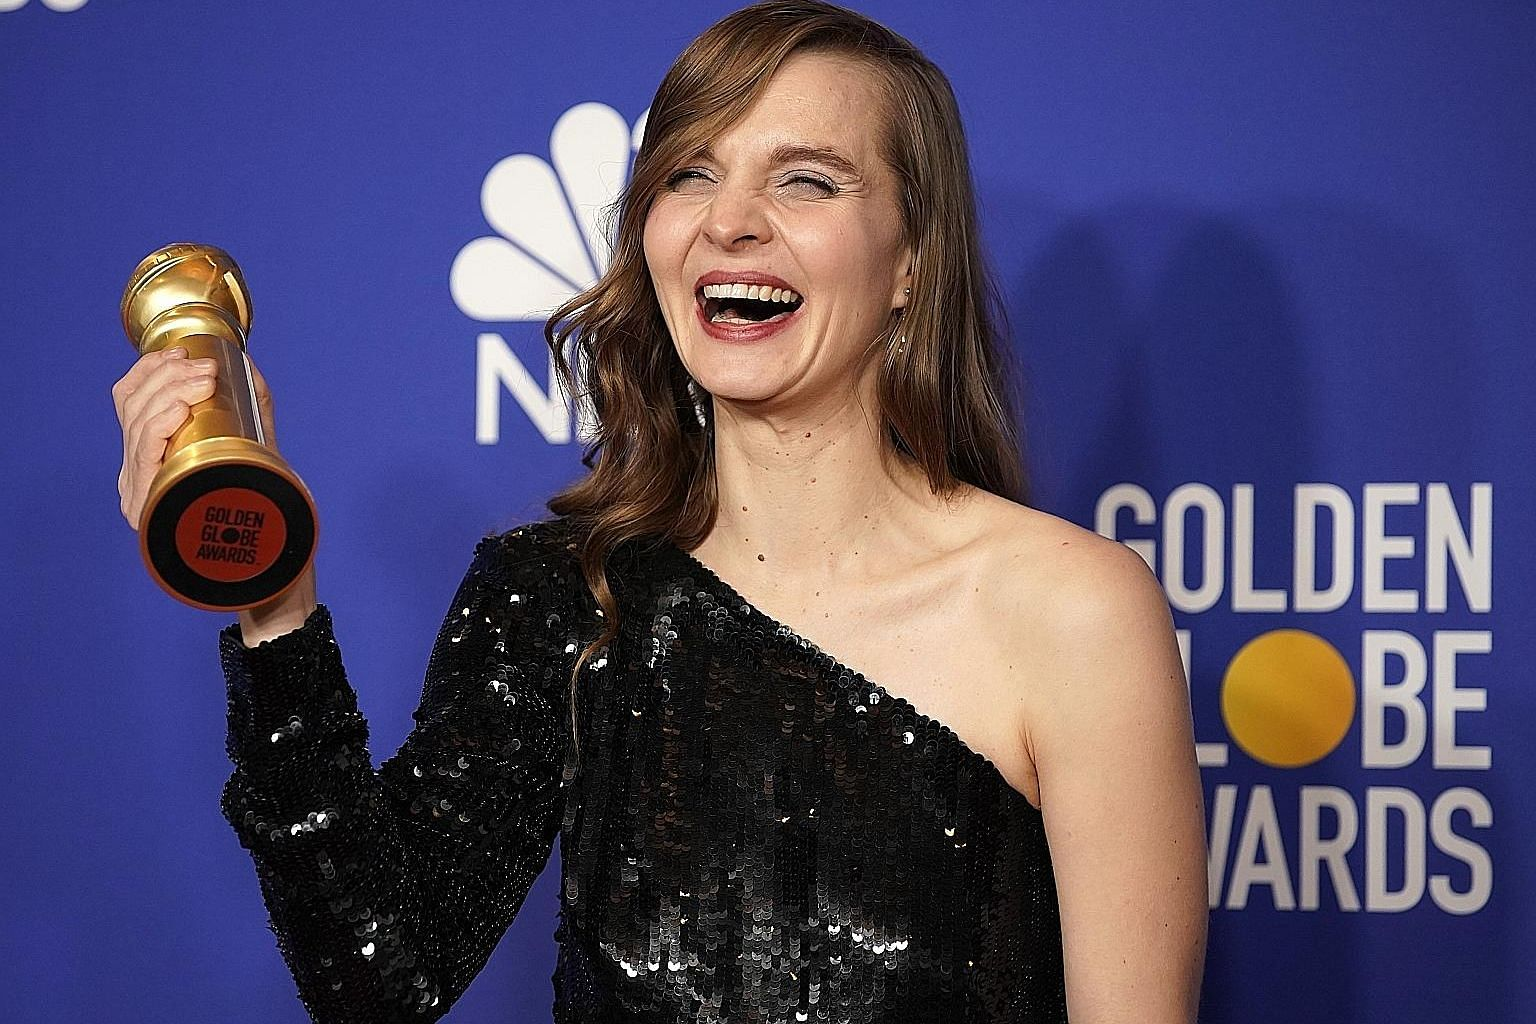 With her win for Best Original Score - Motion Picture for Joker, Hildur Gudnadottir became the first woman to win a Golden Globe as a solo composer.